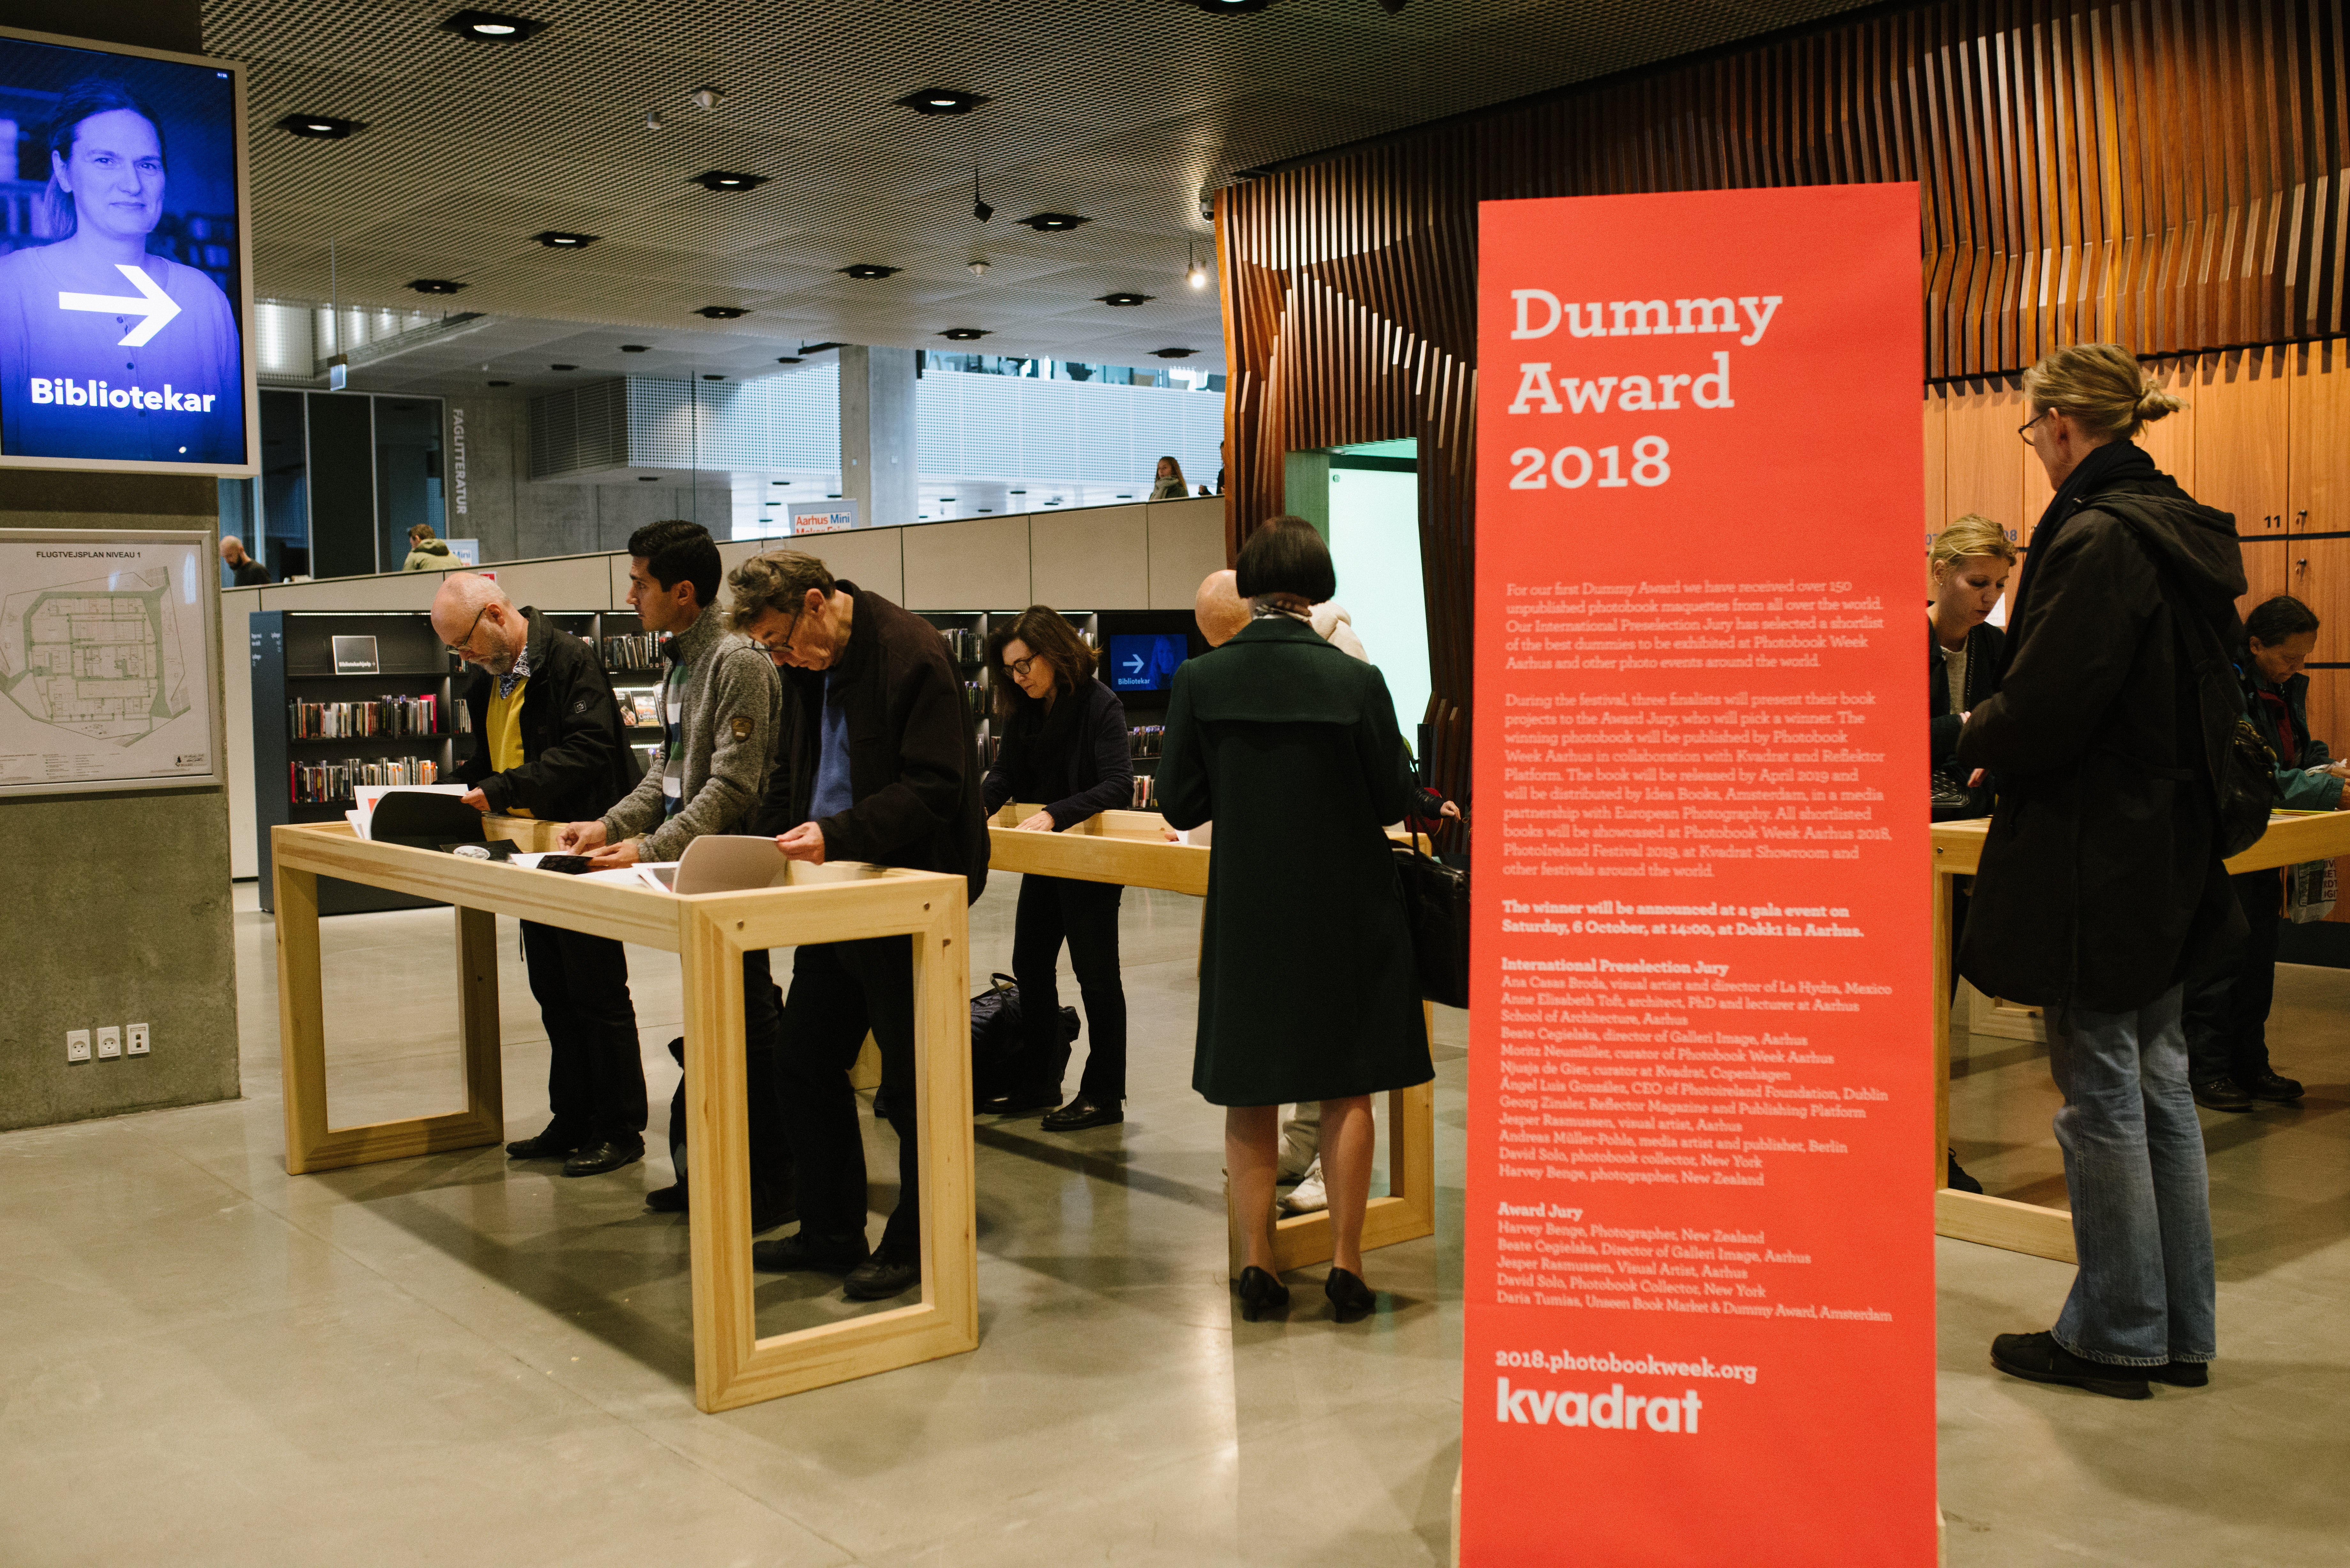 For the first time this year, PWA organized a Dummy award. The award ceremony took place at DoKK1.